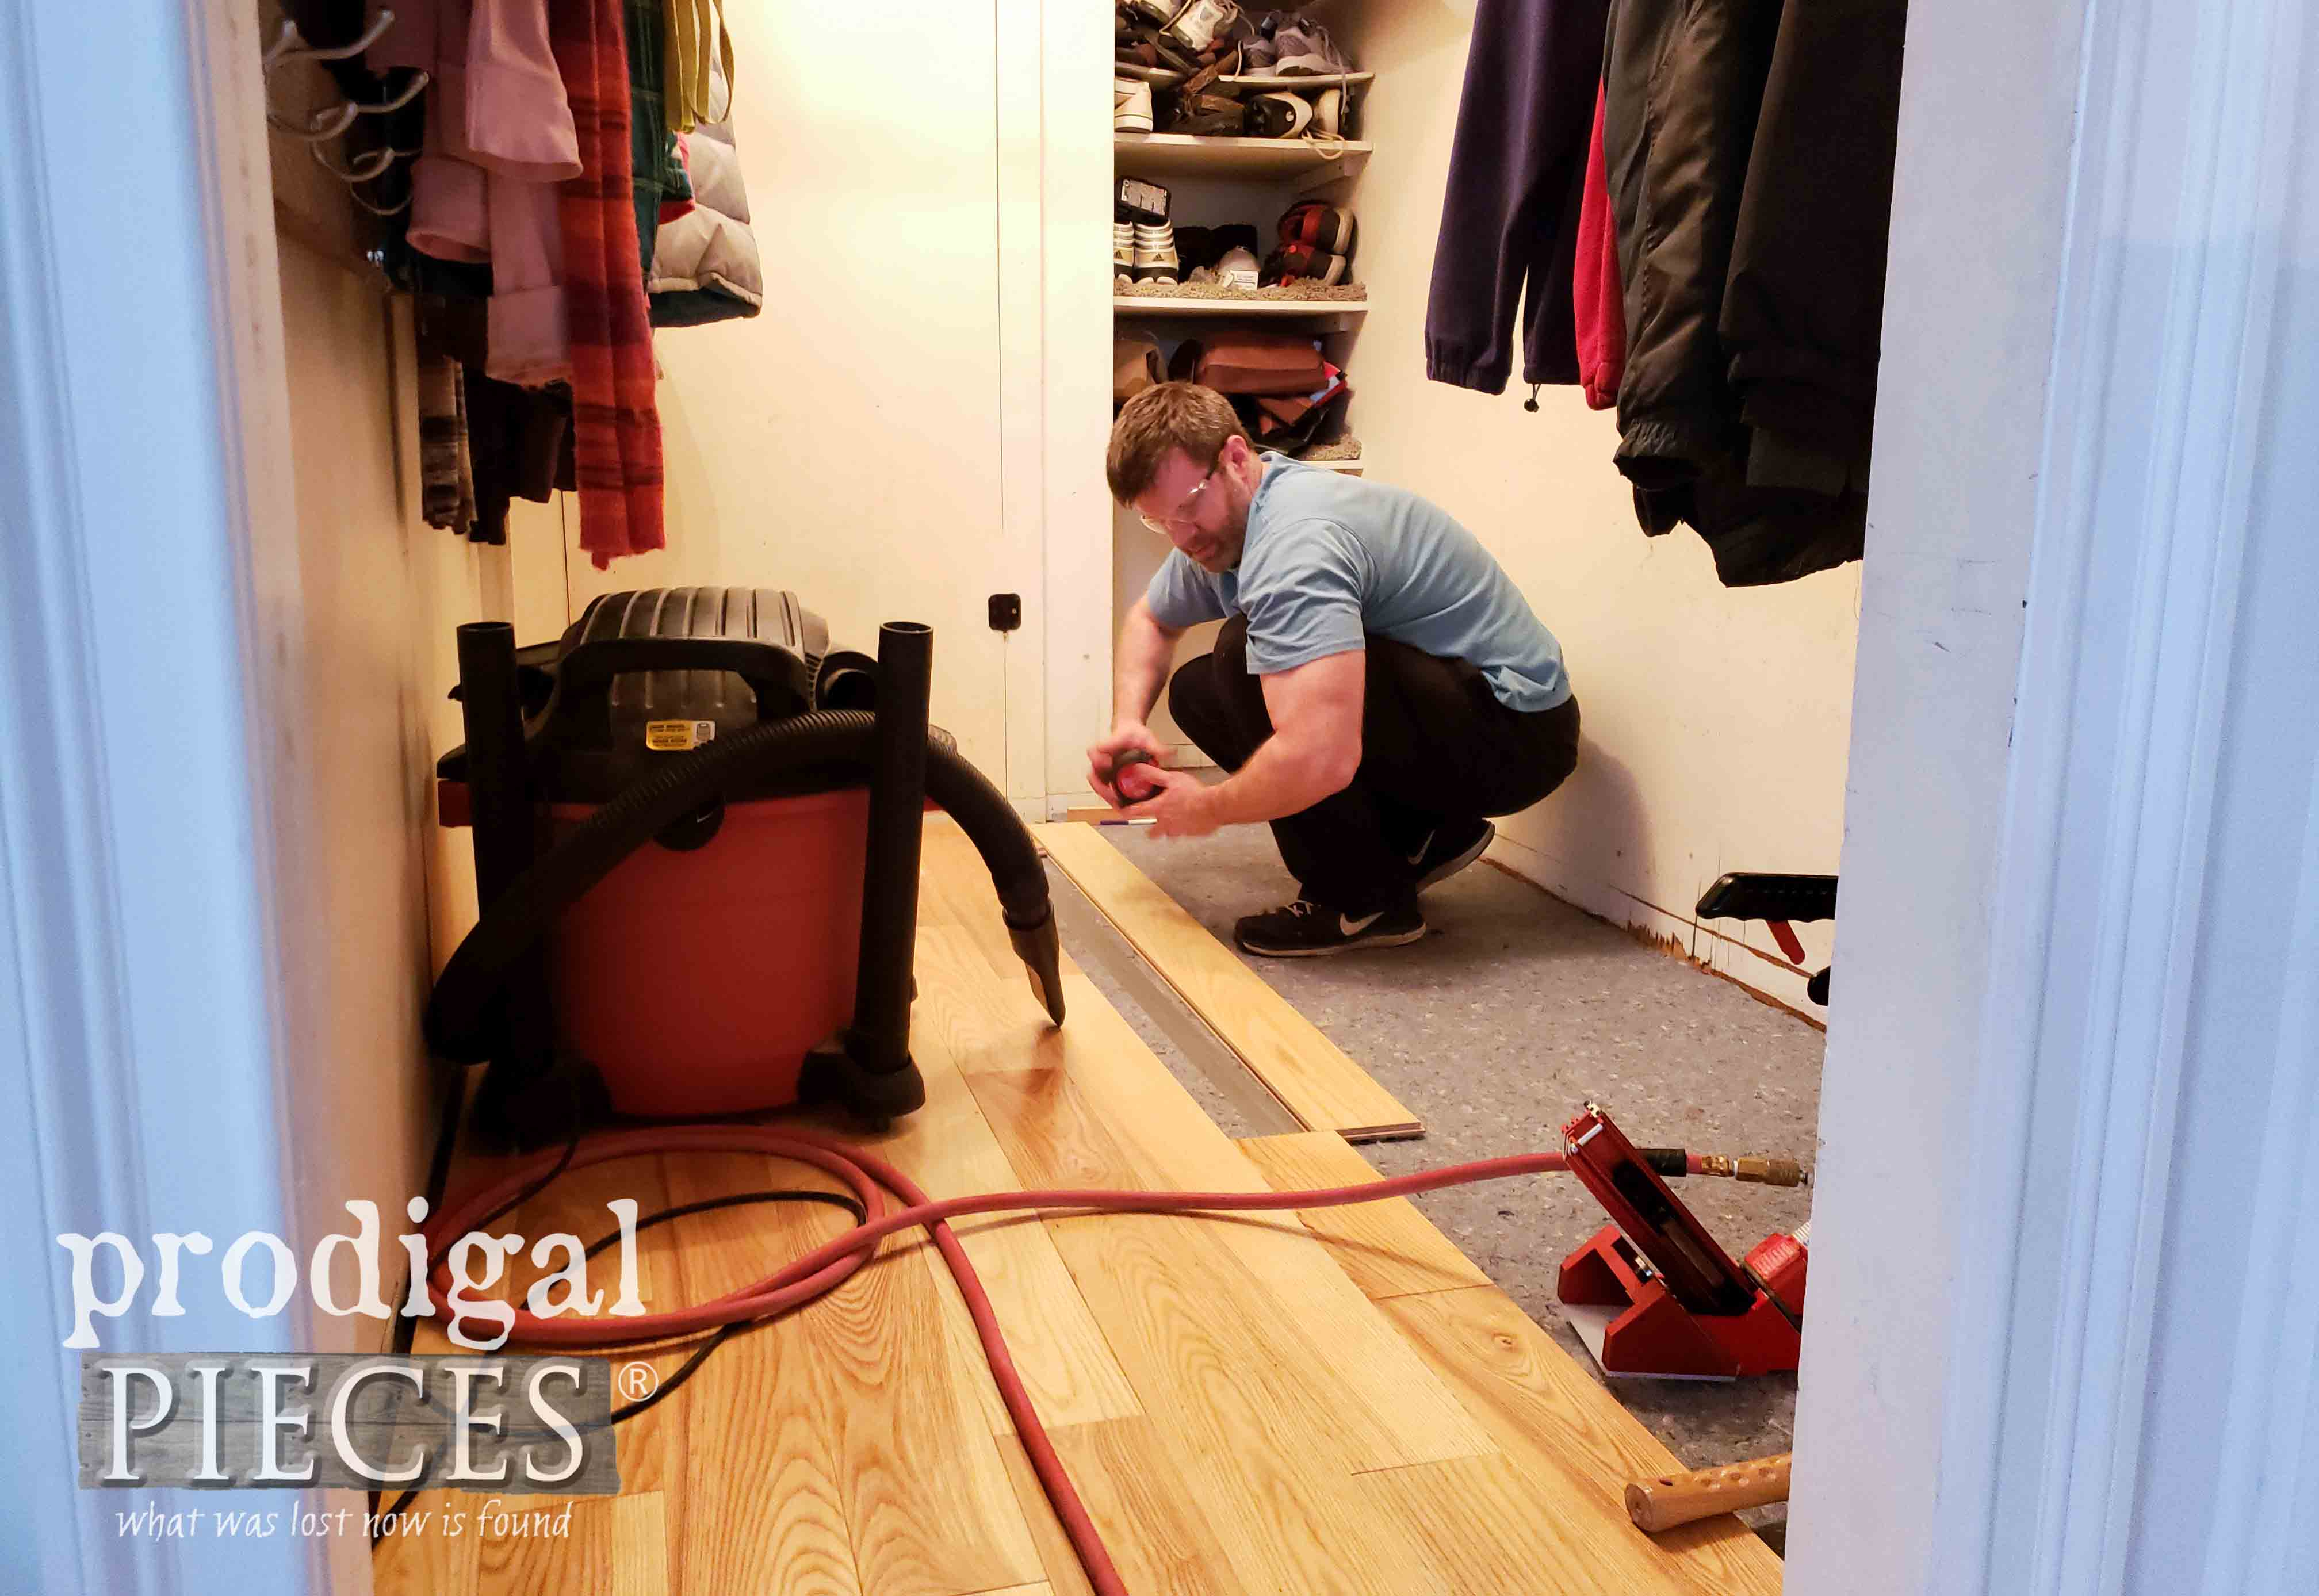 Installing Hardwood Floors in Mudroom Update by Prodigal Pieces | prodigalpieces.com